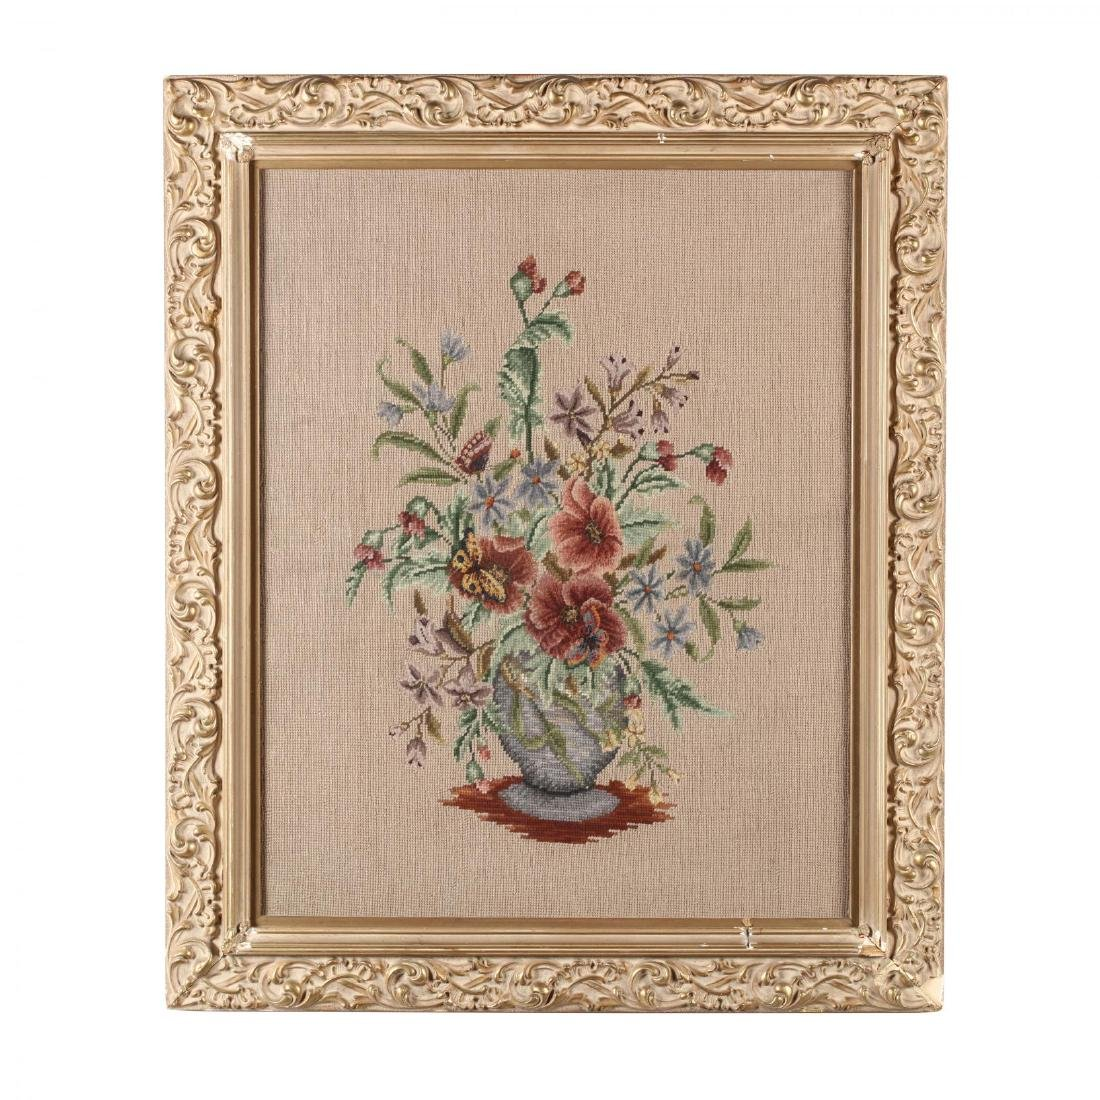 A Vintage Needlework Still Life of Flowers